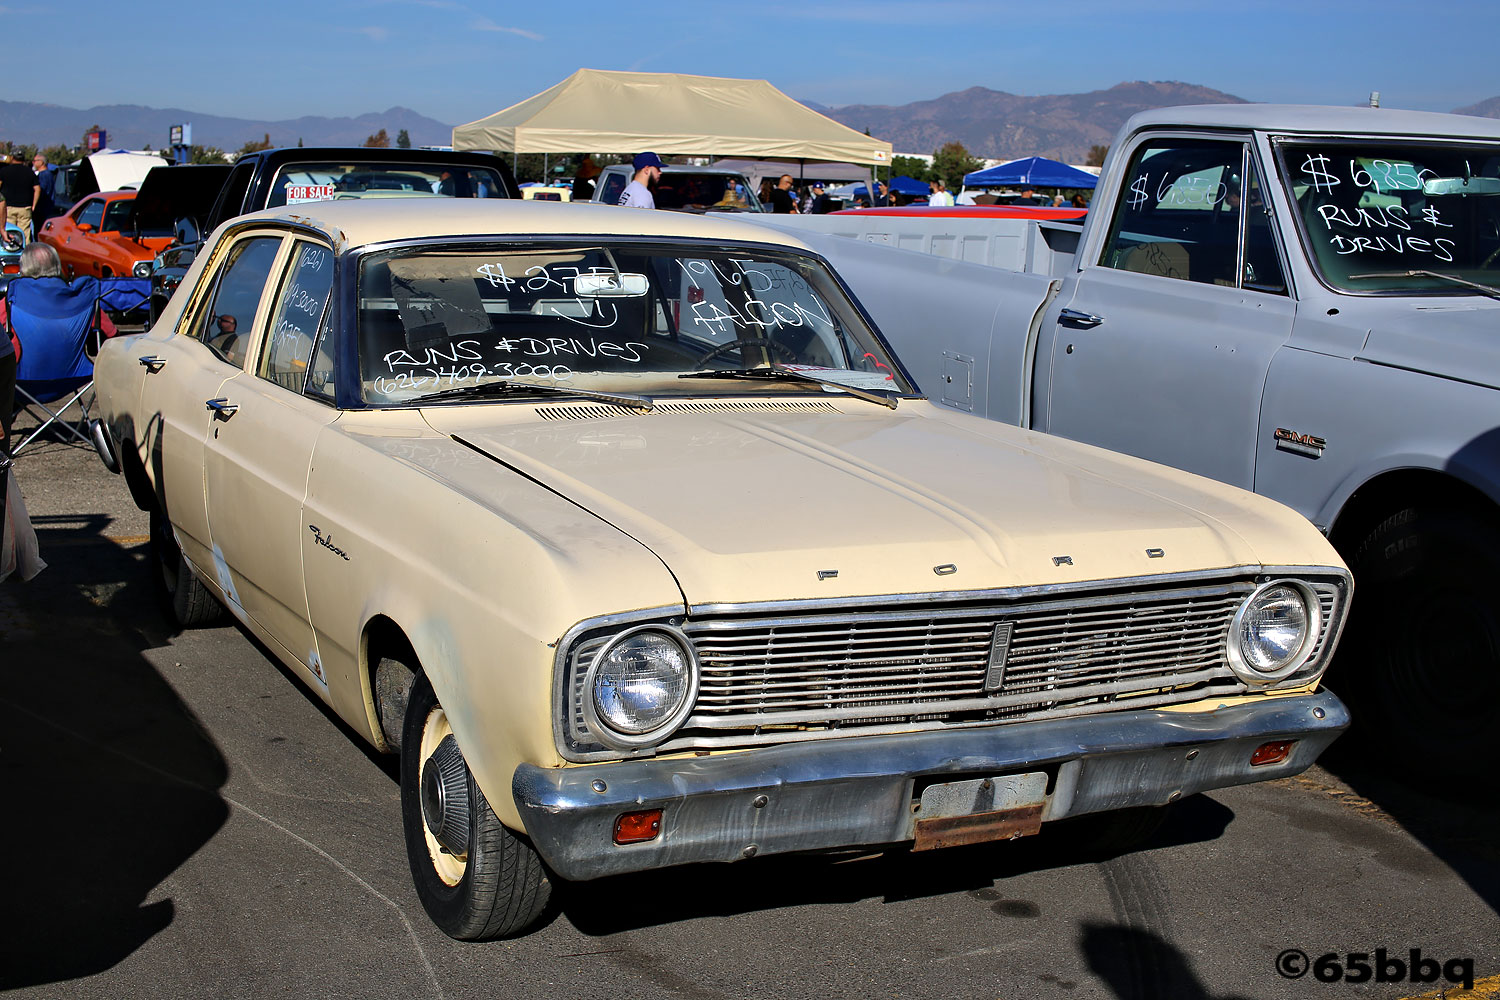 Ford Falcon in yellow